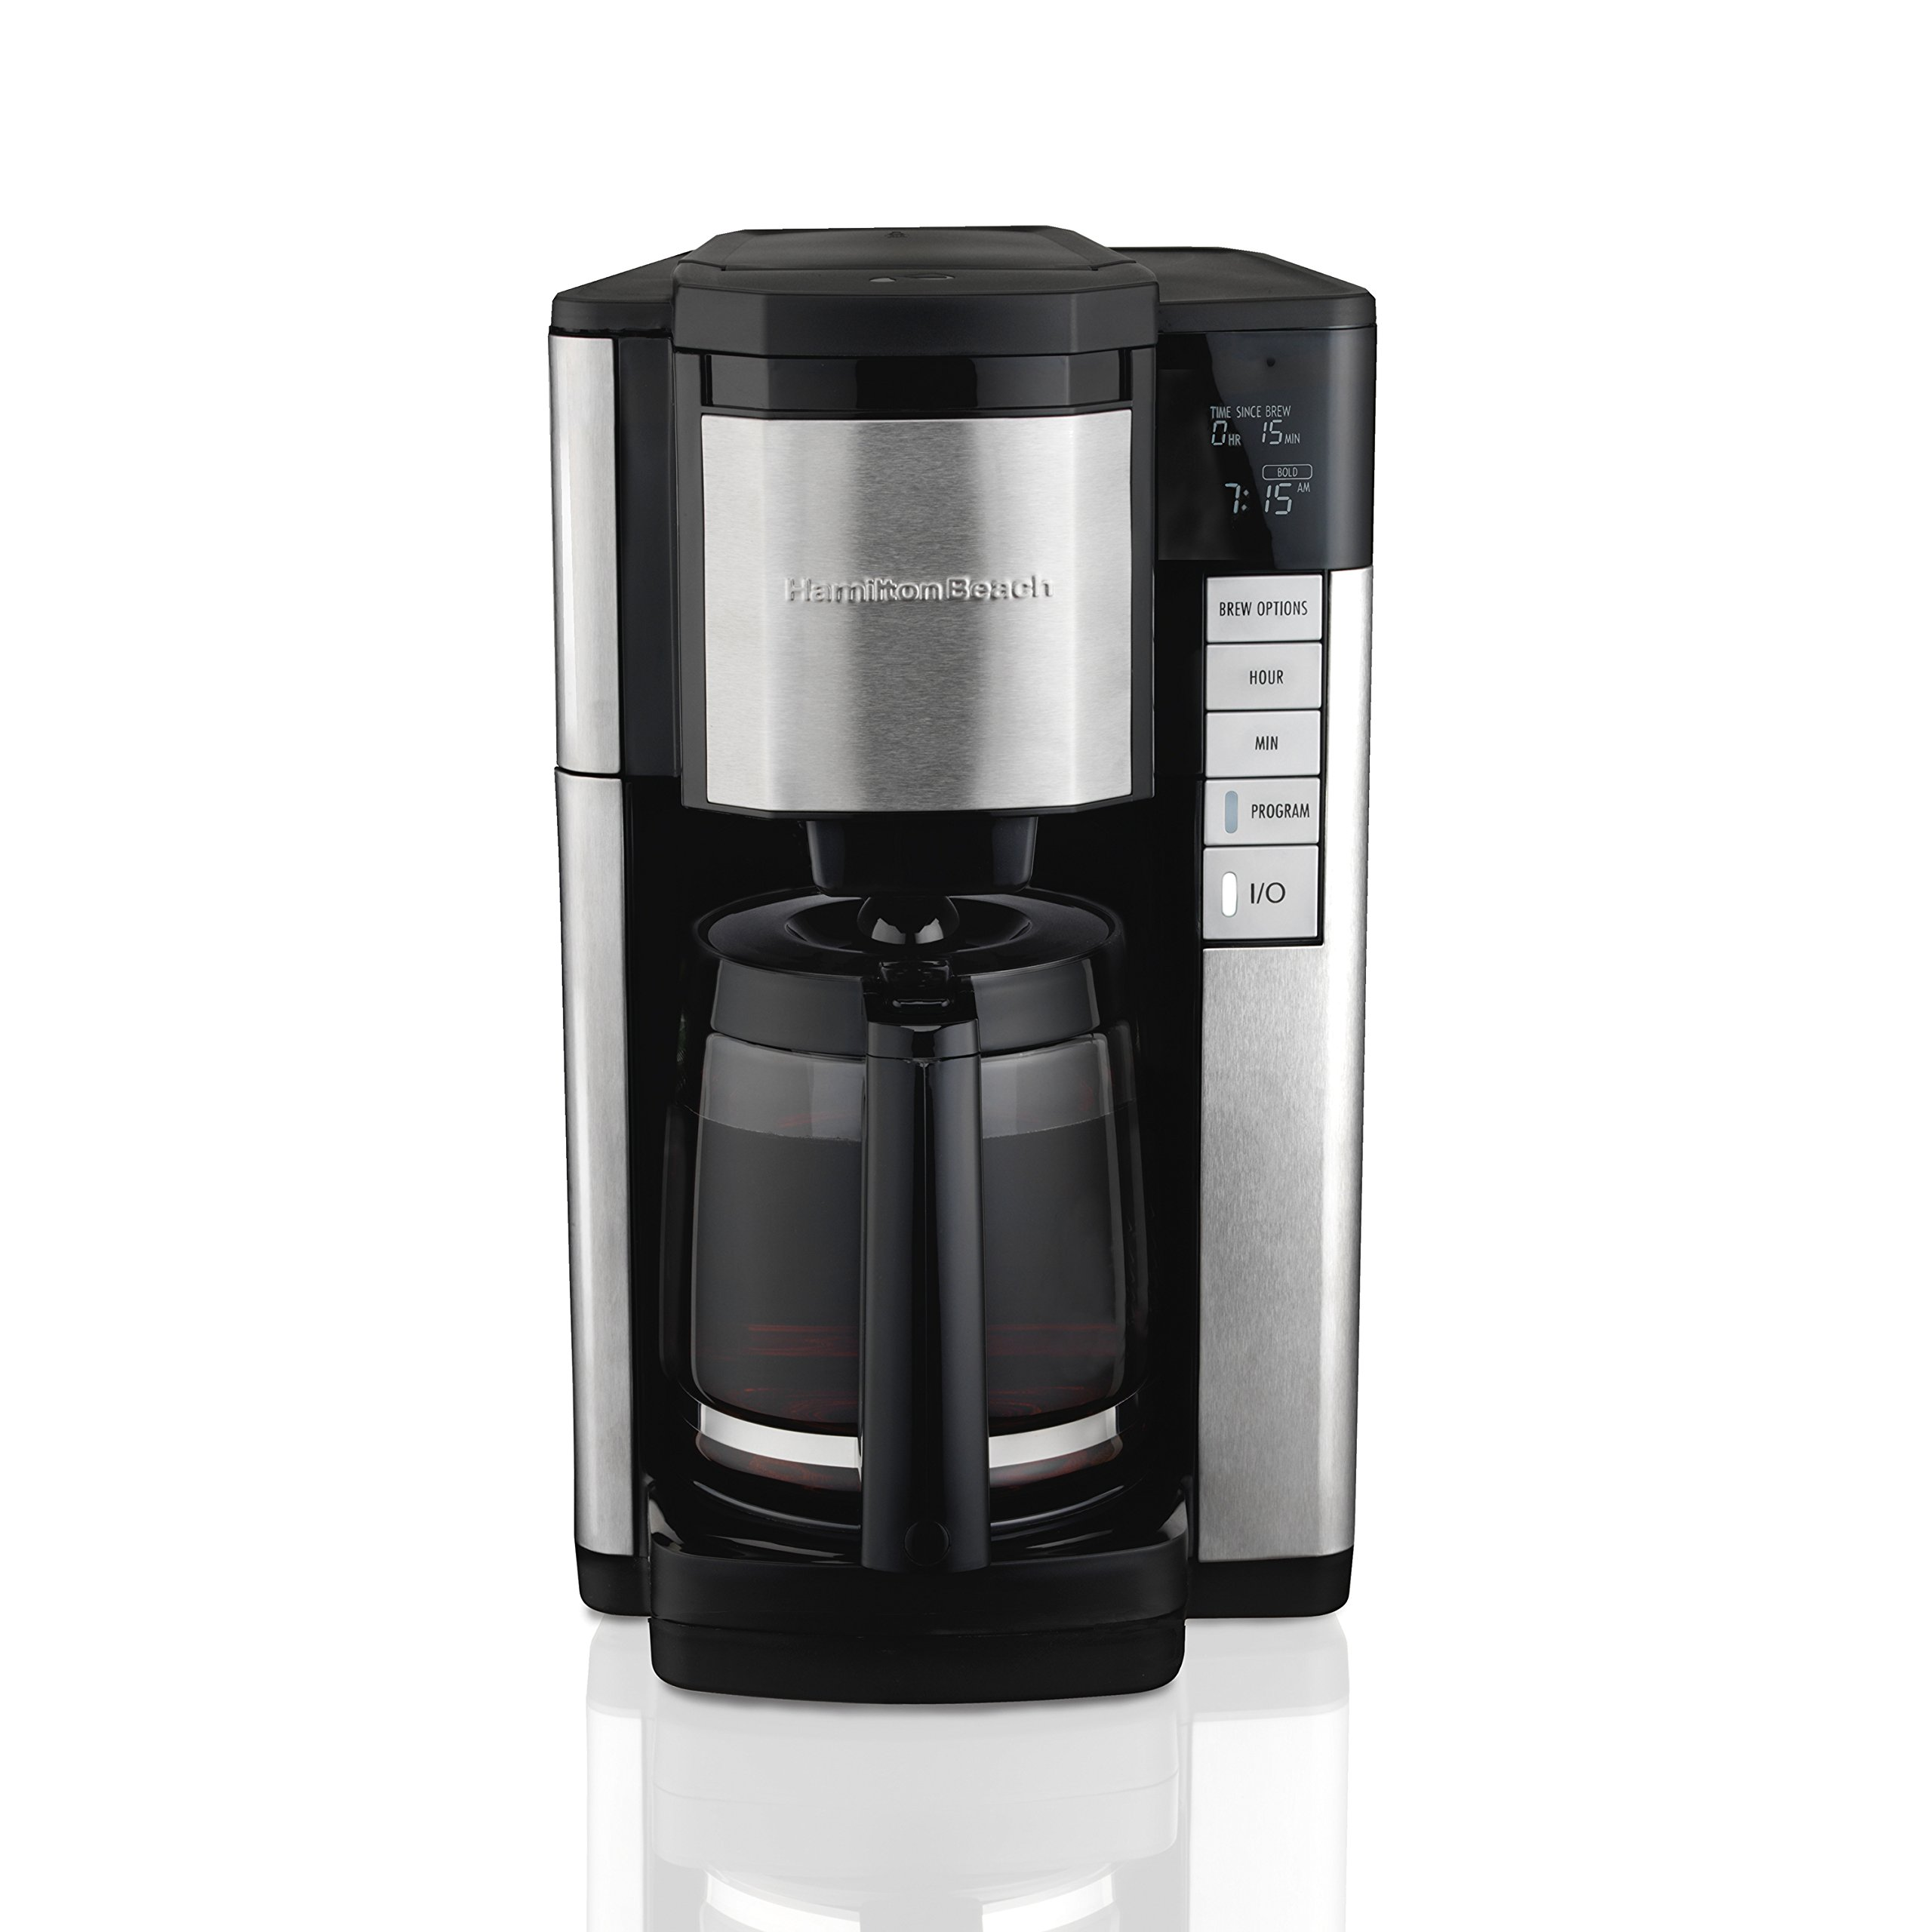 Hamilton Beach 46381 12-Cup Programmable Coffee Maker, Easy Access Plus, Brew Options, Cone Filter, Black and Stainless by Hamilton Beach